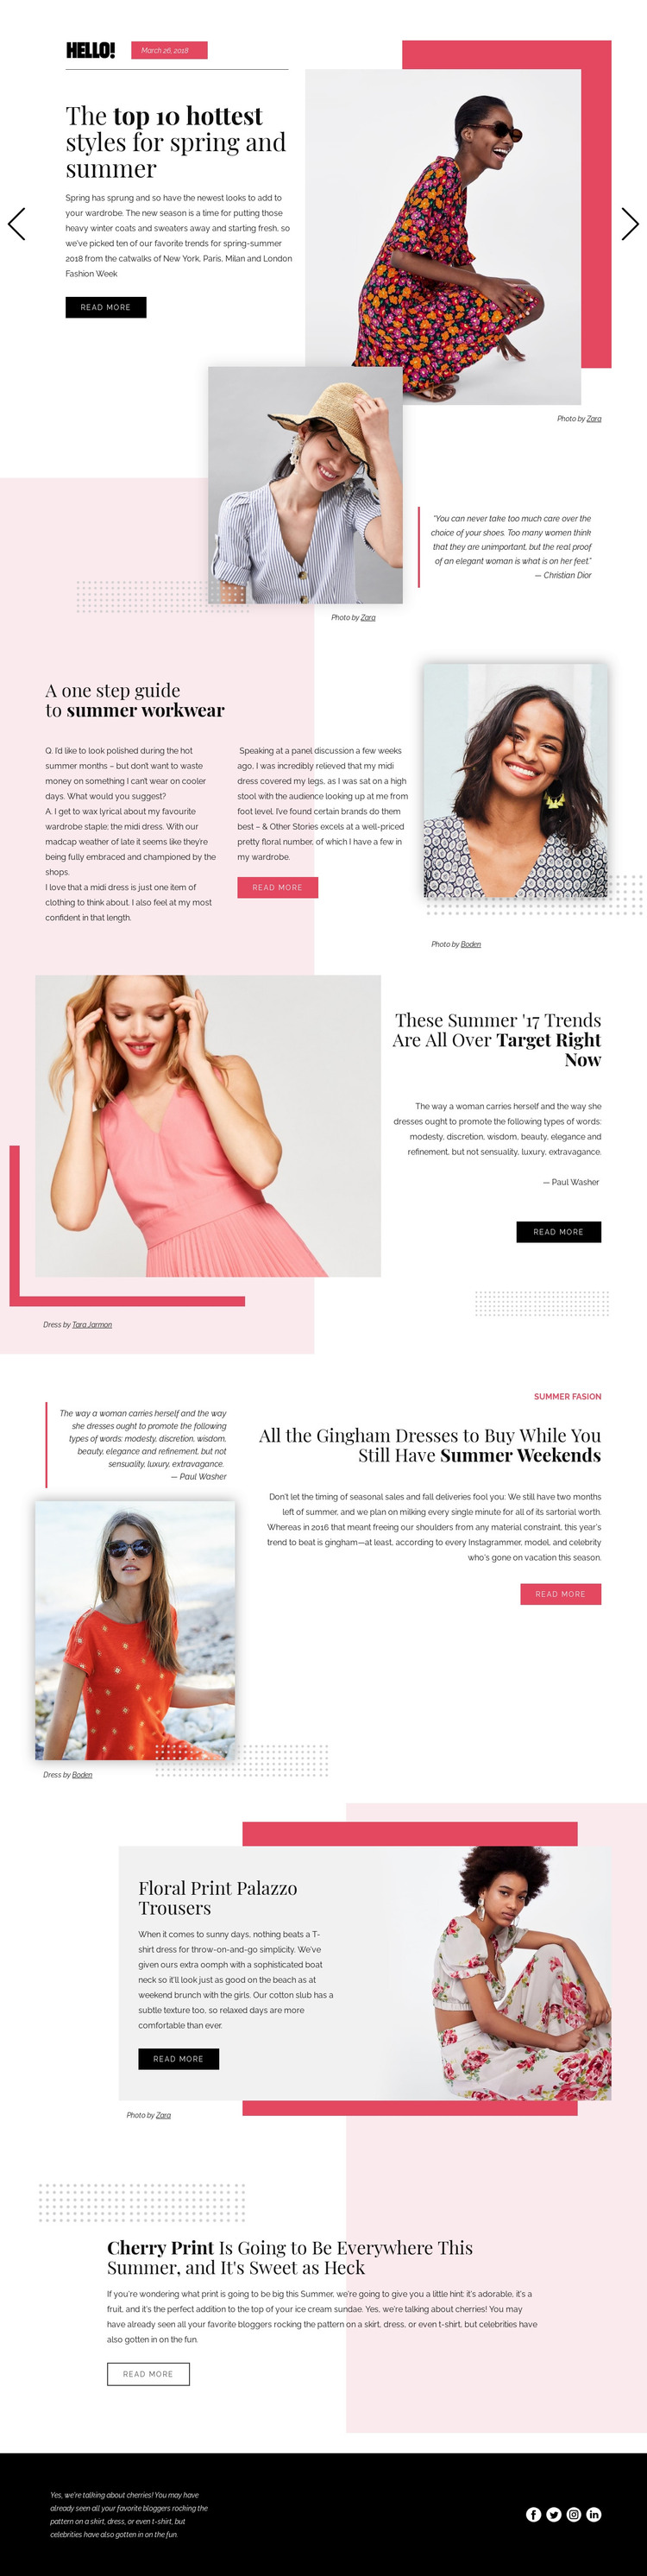 Fashion Trends WordPress Theme